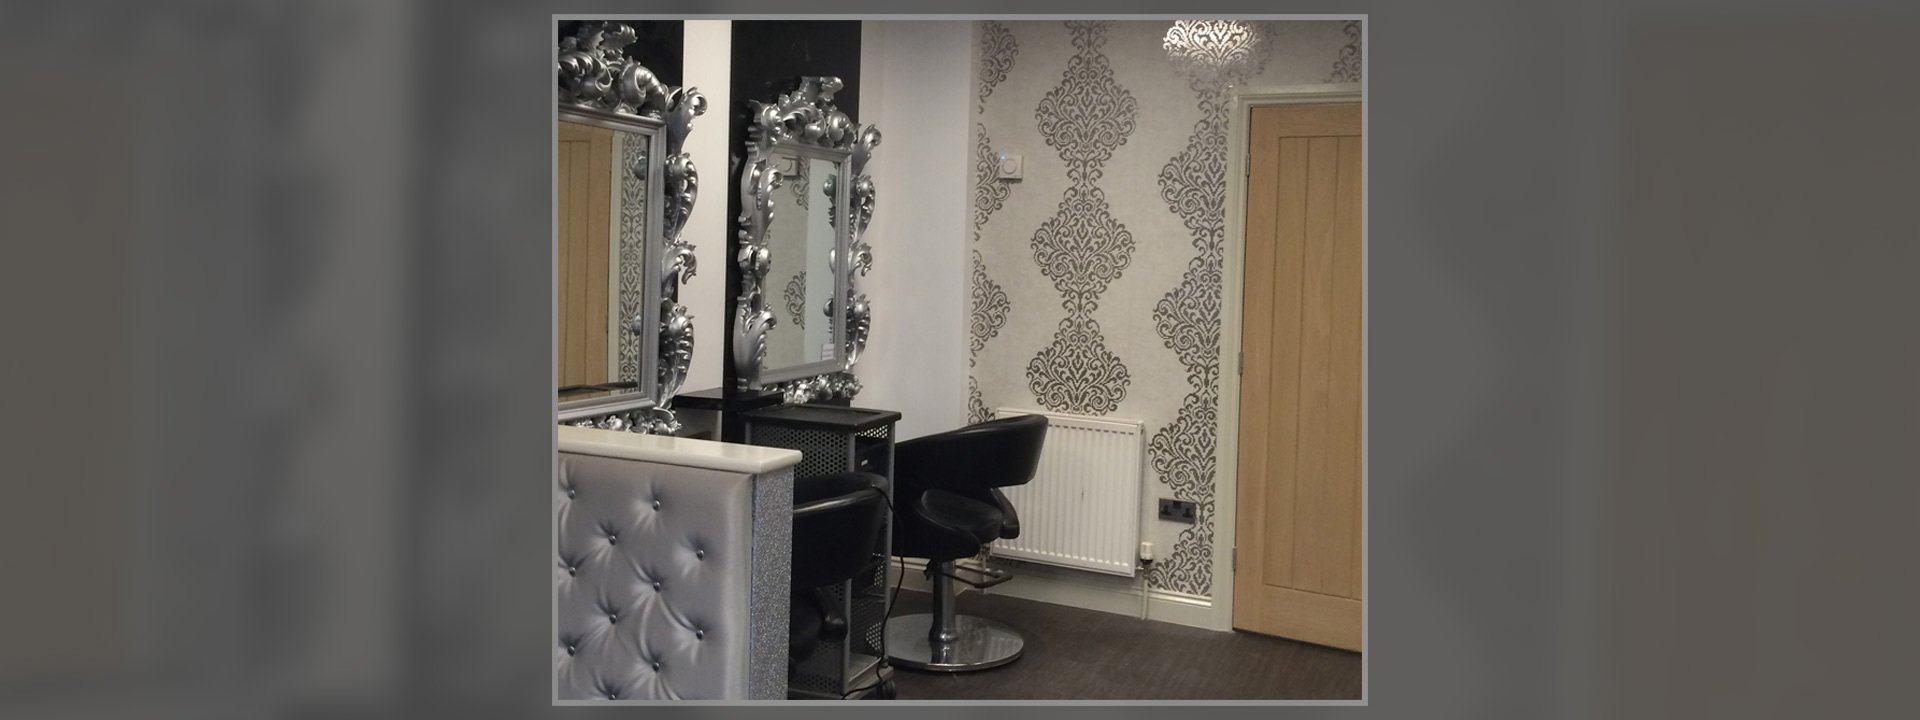 Black leather chairs in front of mirrors with ornate silver frames